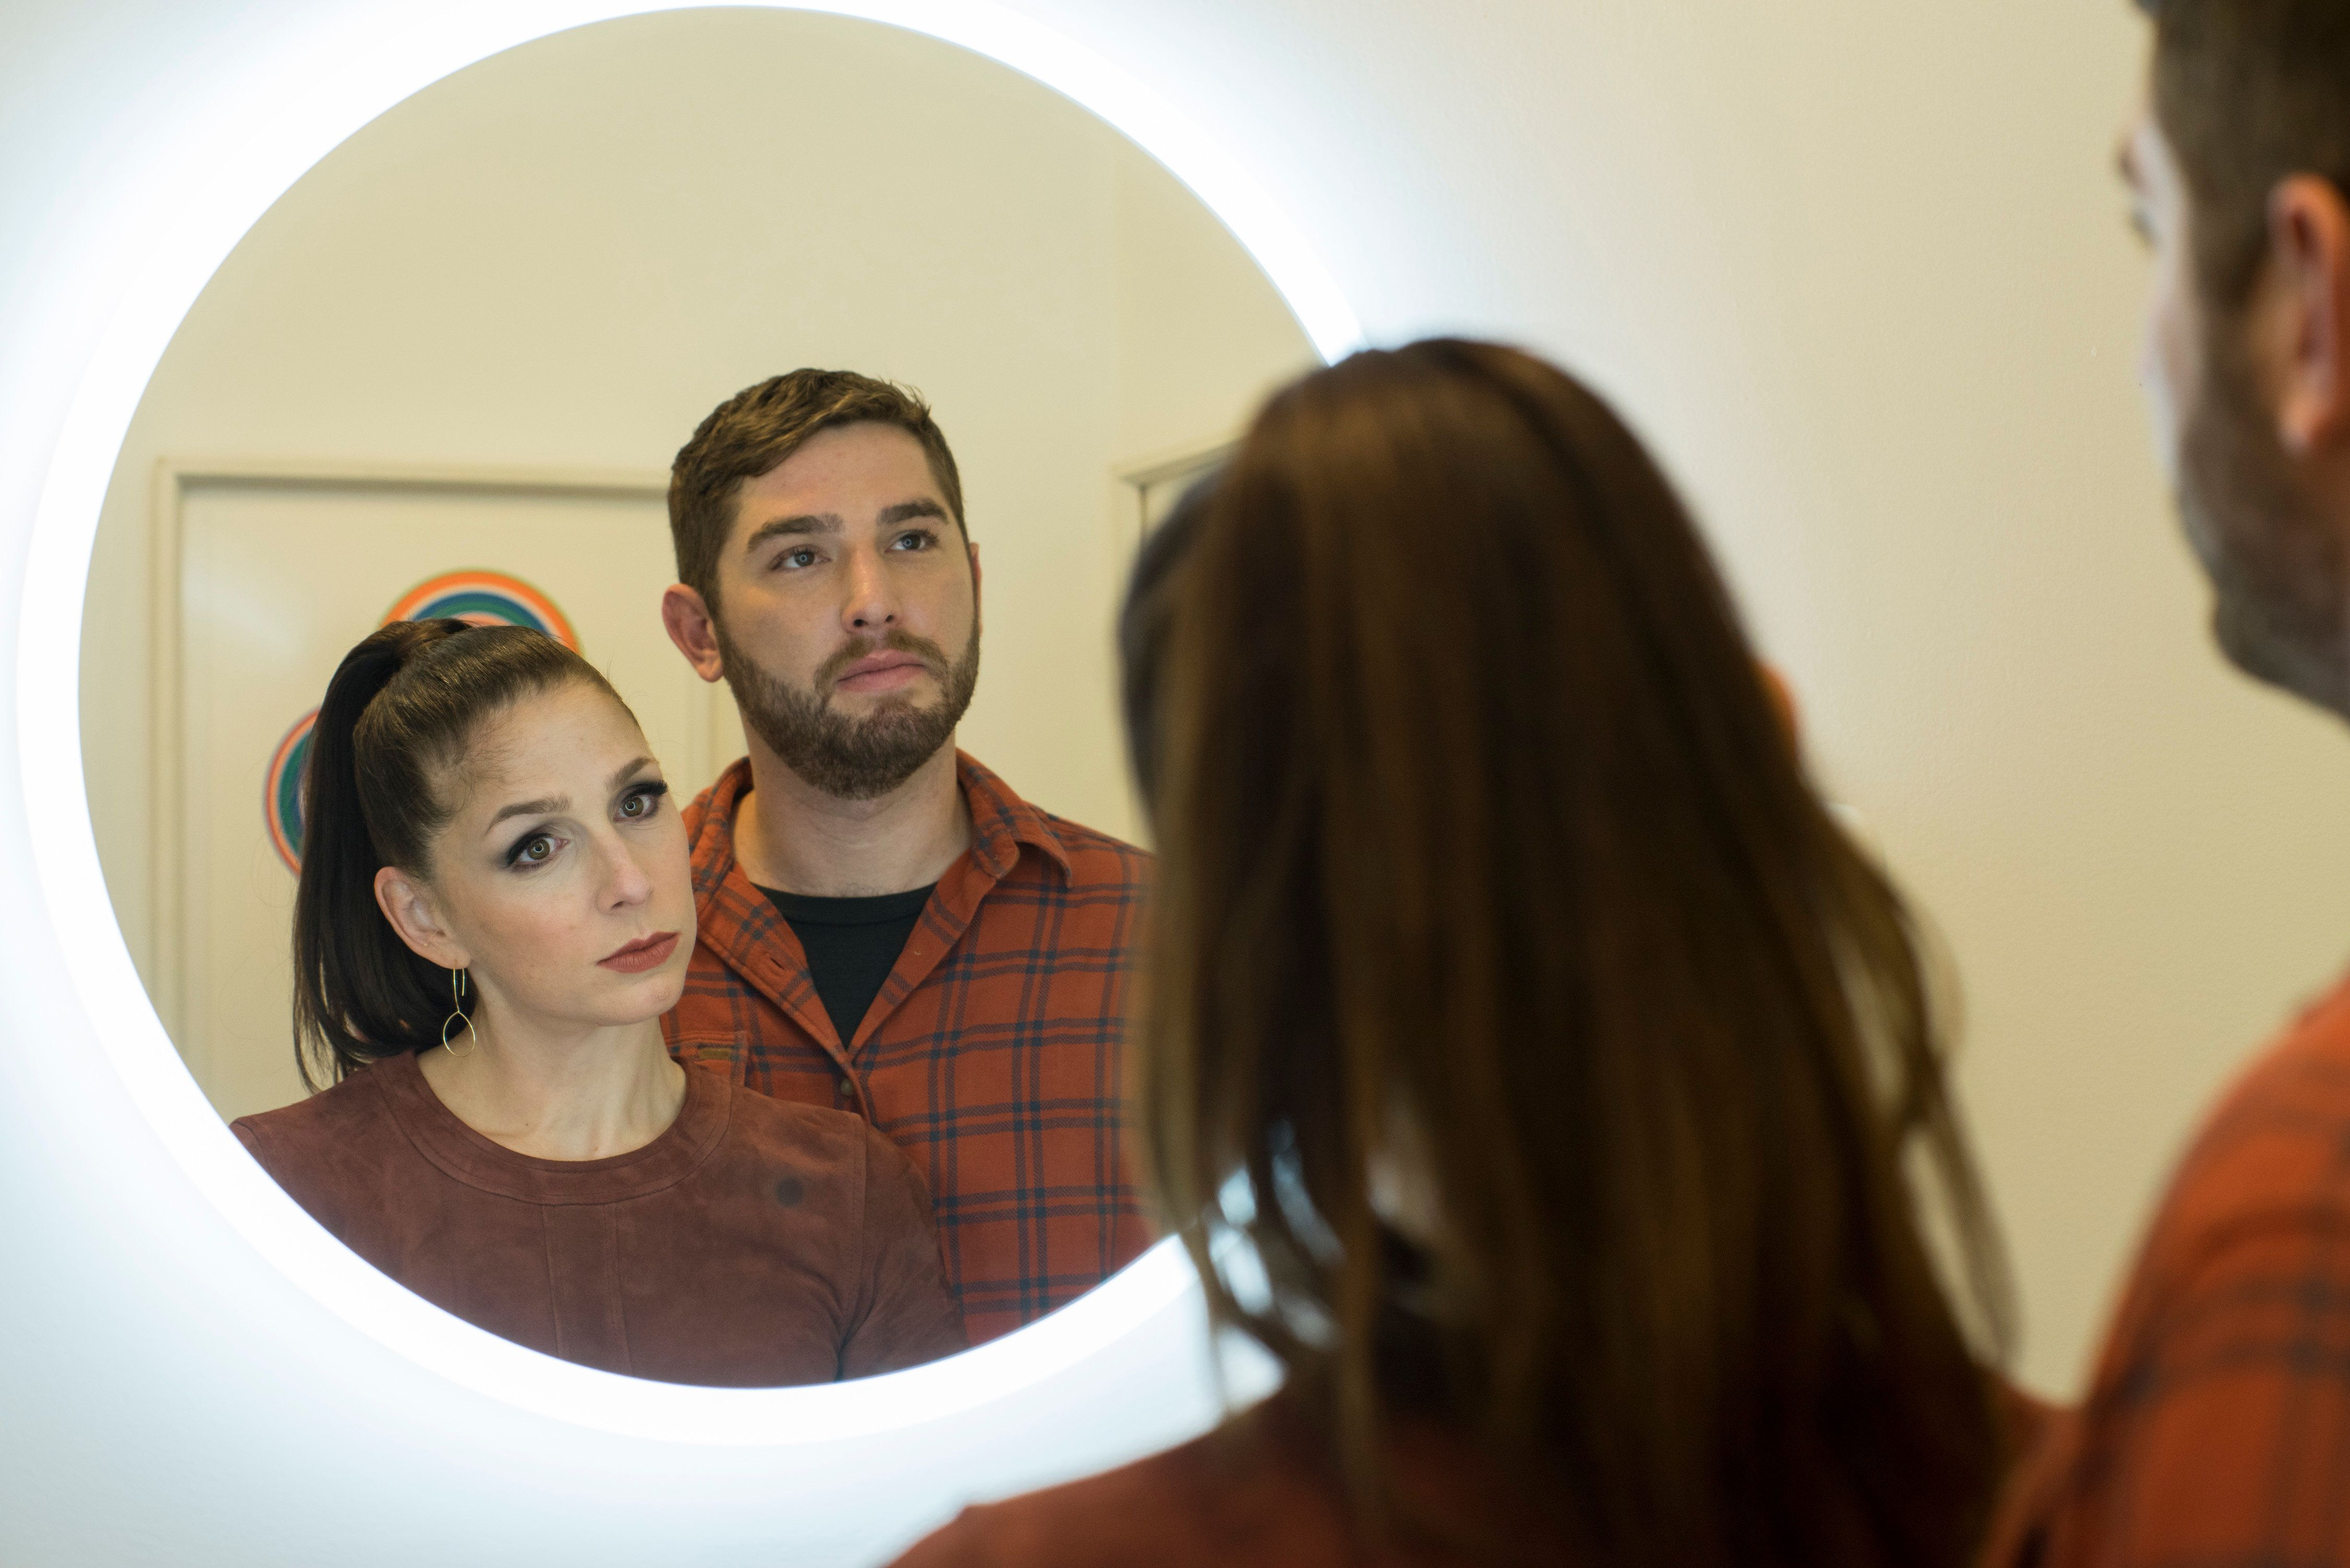 """Shoshannah Stern and Josh Feldman """"have created characters and a relationship that reveal our humanity,"""" director Andre"""